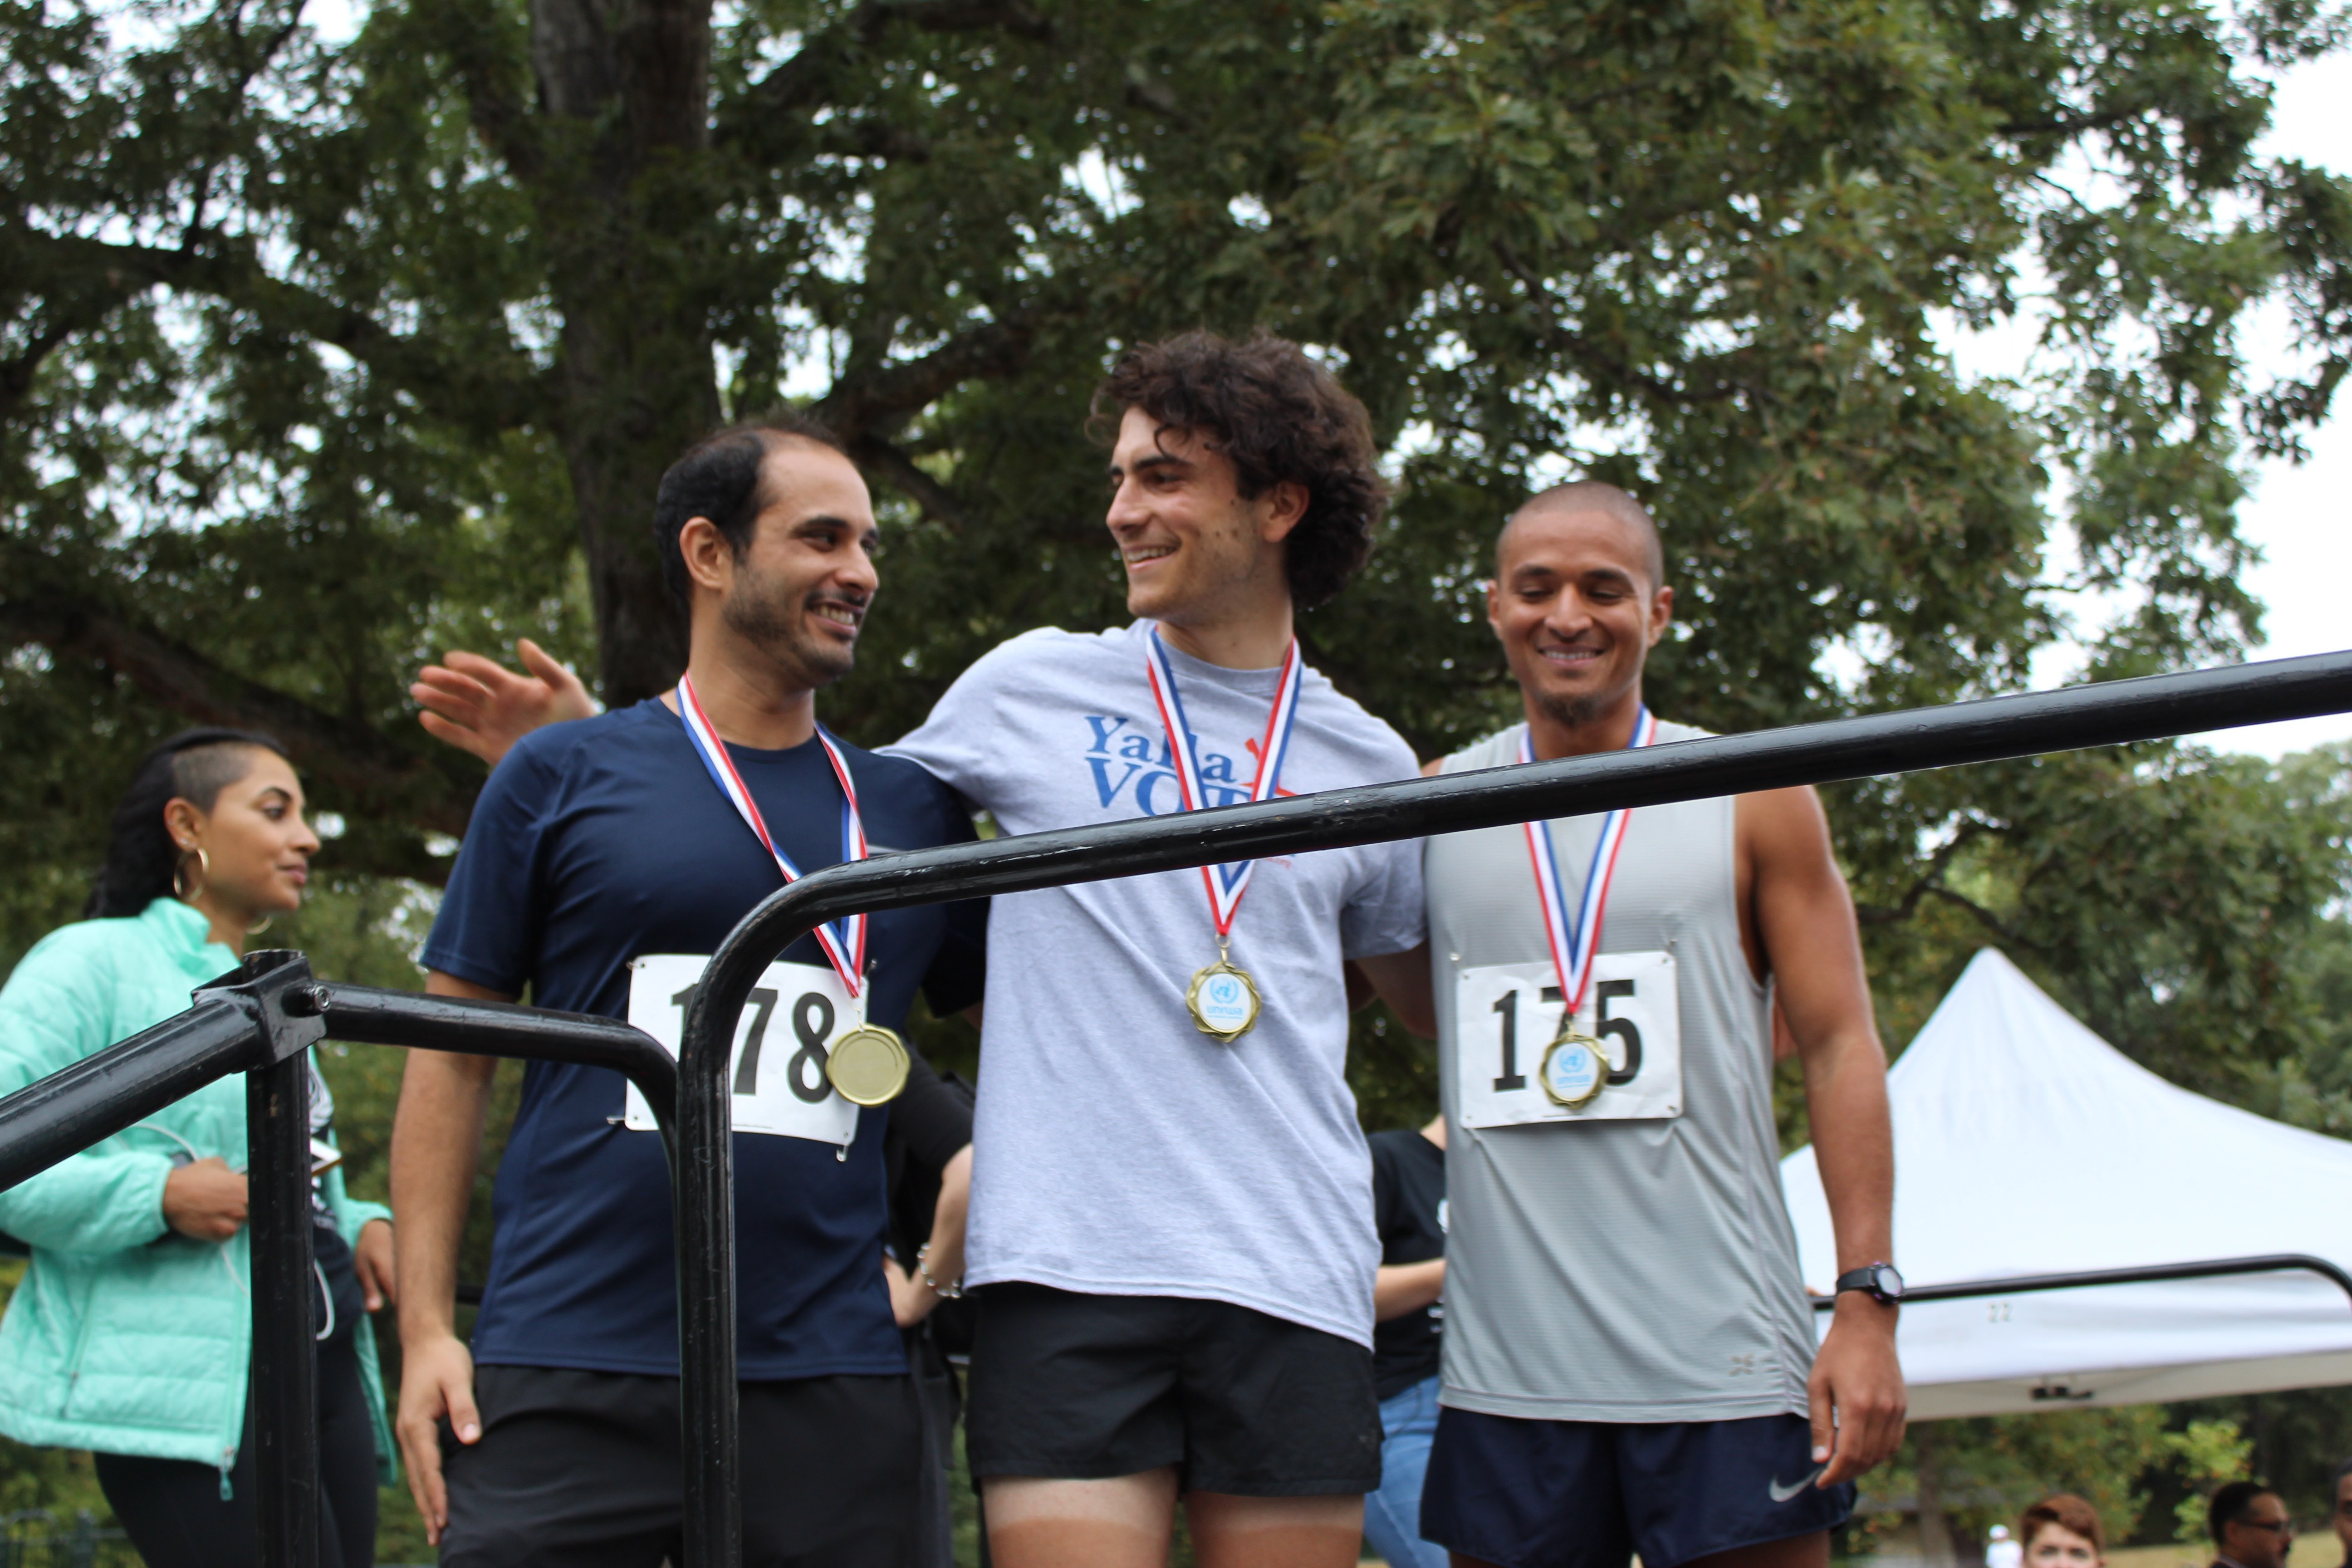 Kai Wiggins standing between two other runners after accepting their medals at the Gaza 5k (MEE/Sheren Khalel)